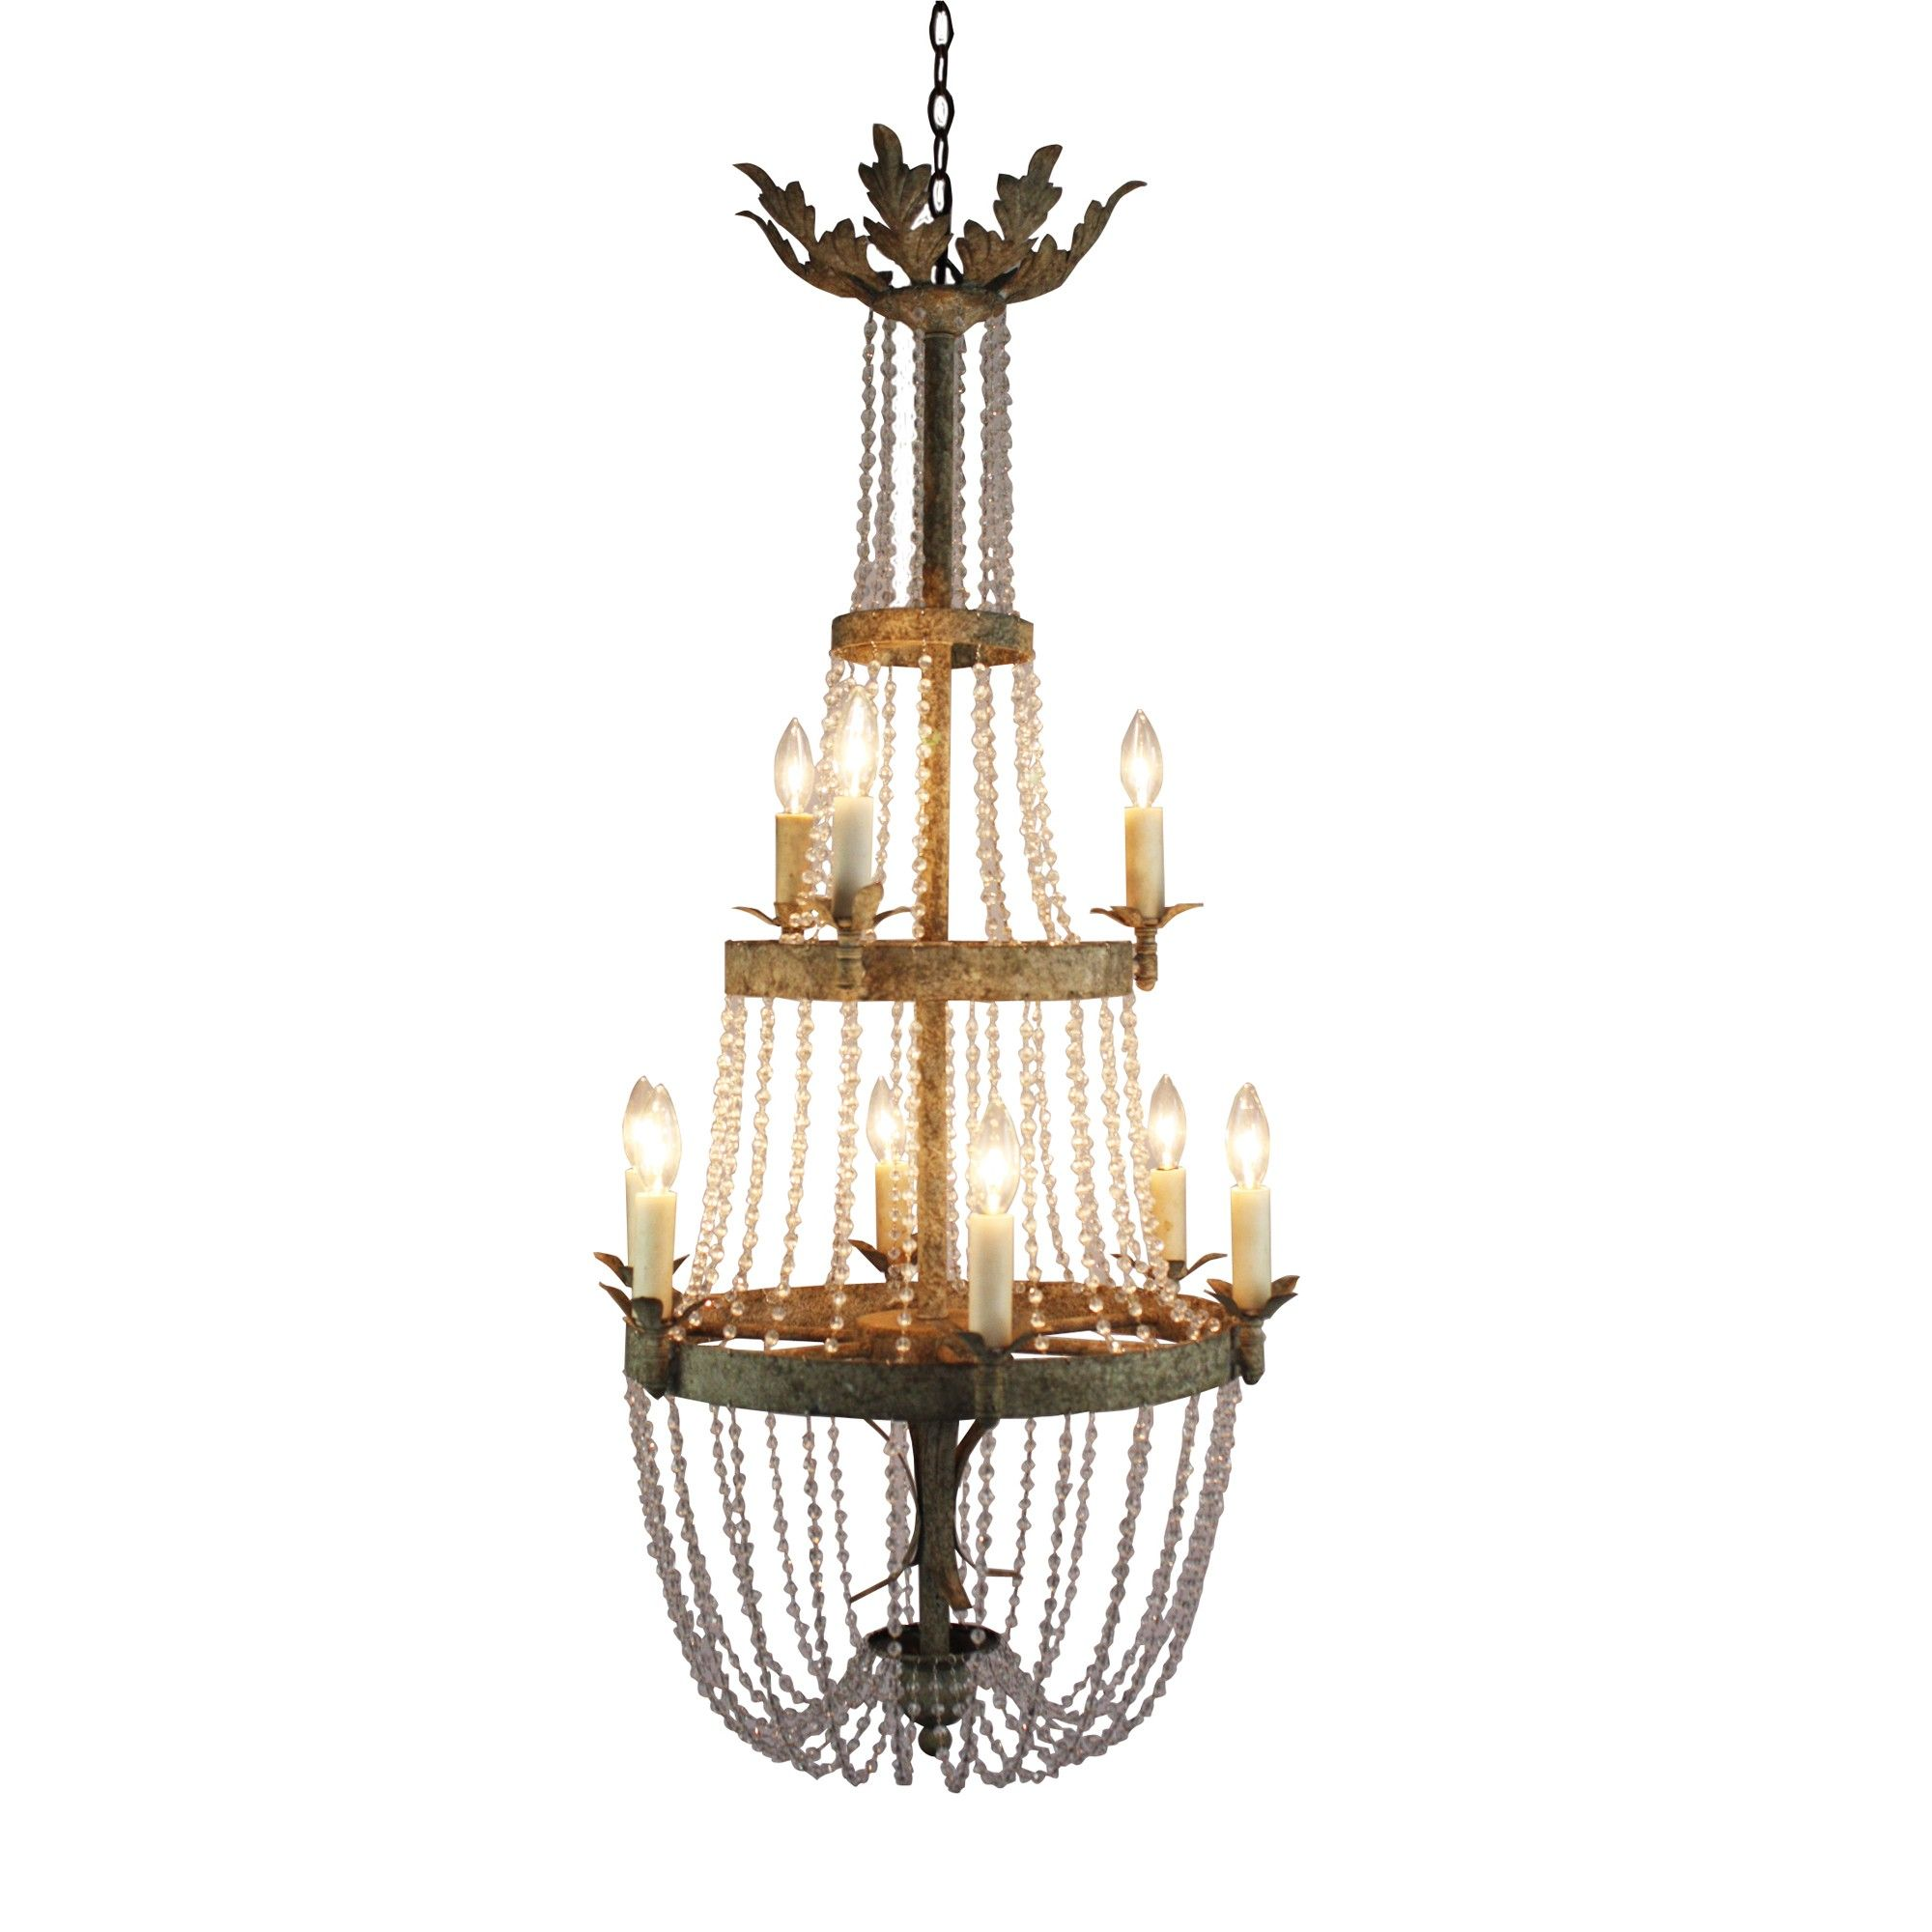 Veronica chandelier by aidan gray all chandeliers come with veronica chandelier by aidan gray all chandeliers come with standard 7 ft chain arubaitofo Image collections